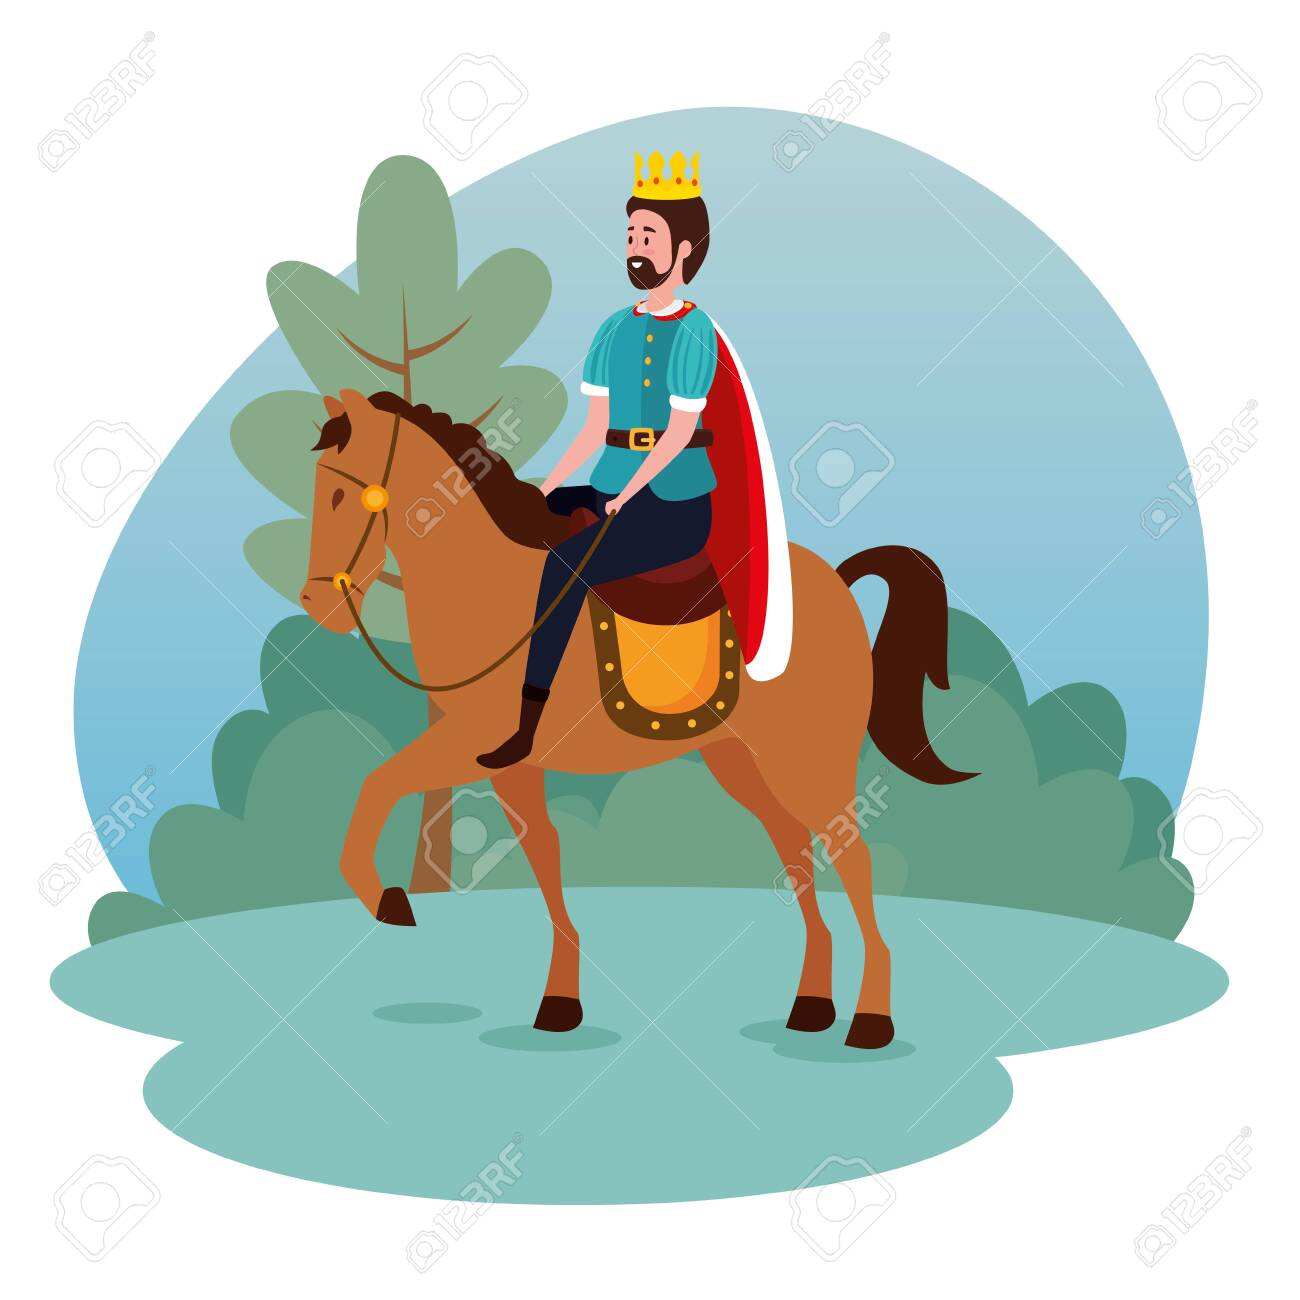 Man King With Crown And Suit Riding Horse To Tale Character Royalty Free Cliparts Vectors And Stock Illustration Image 129763165